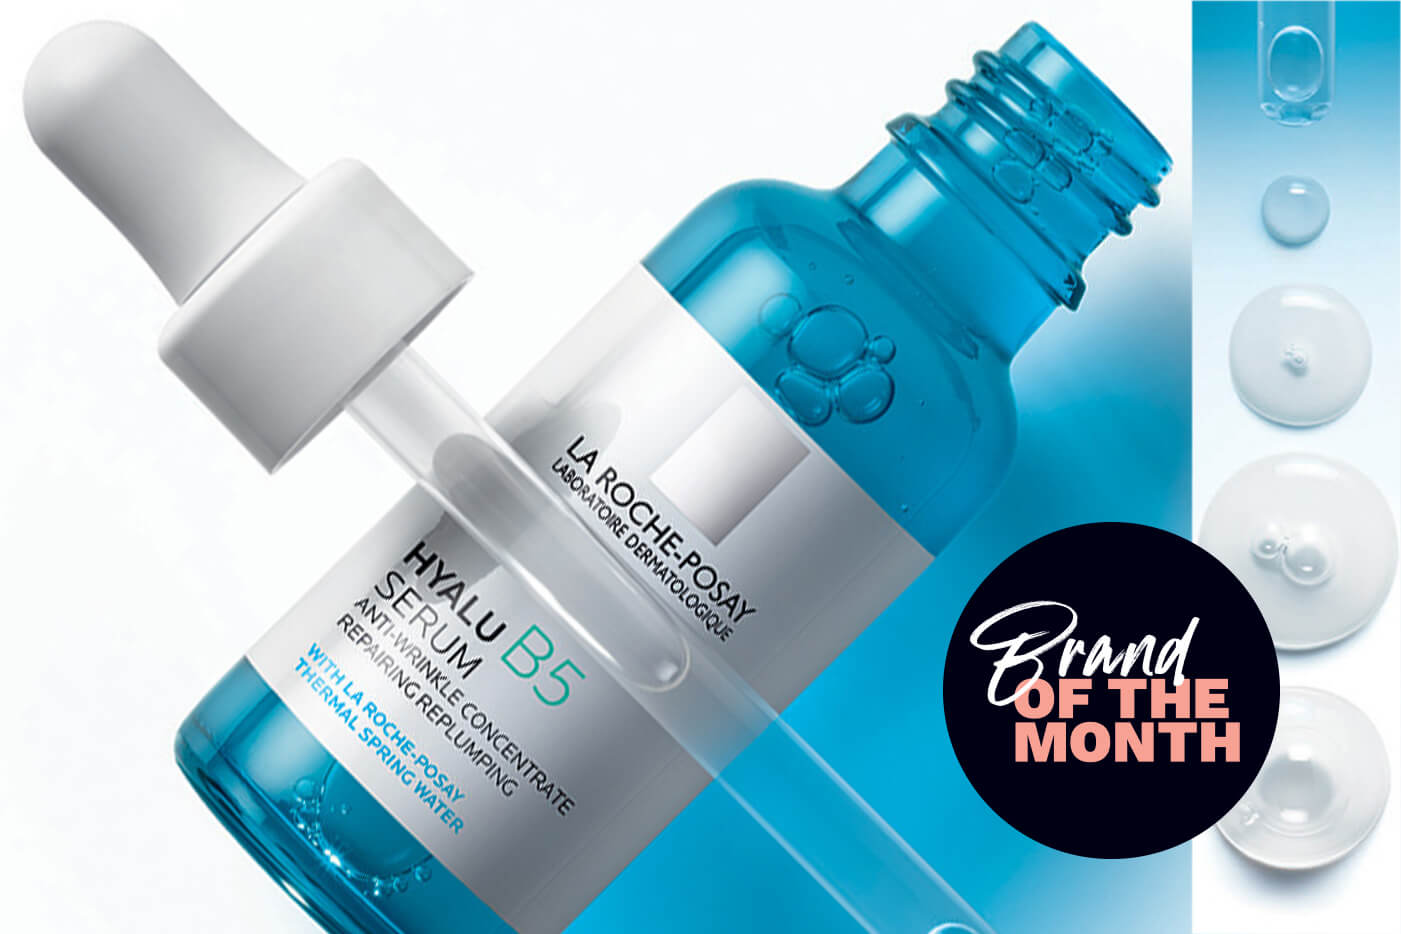 Brand of the month: La Roche-Posay